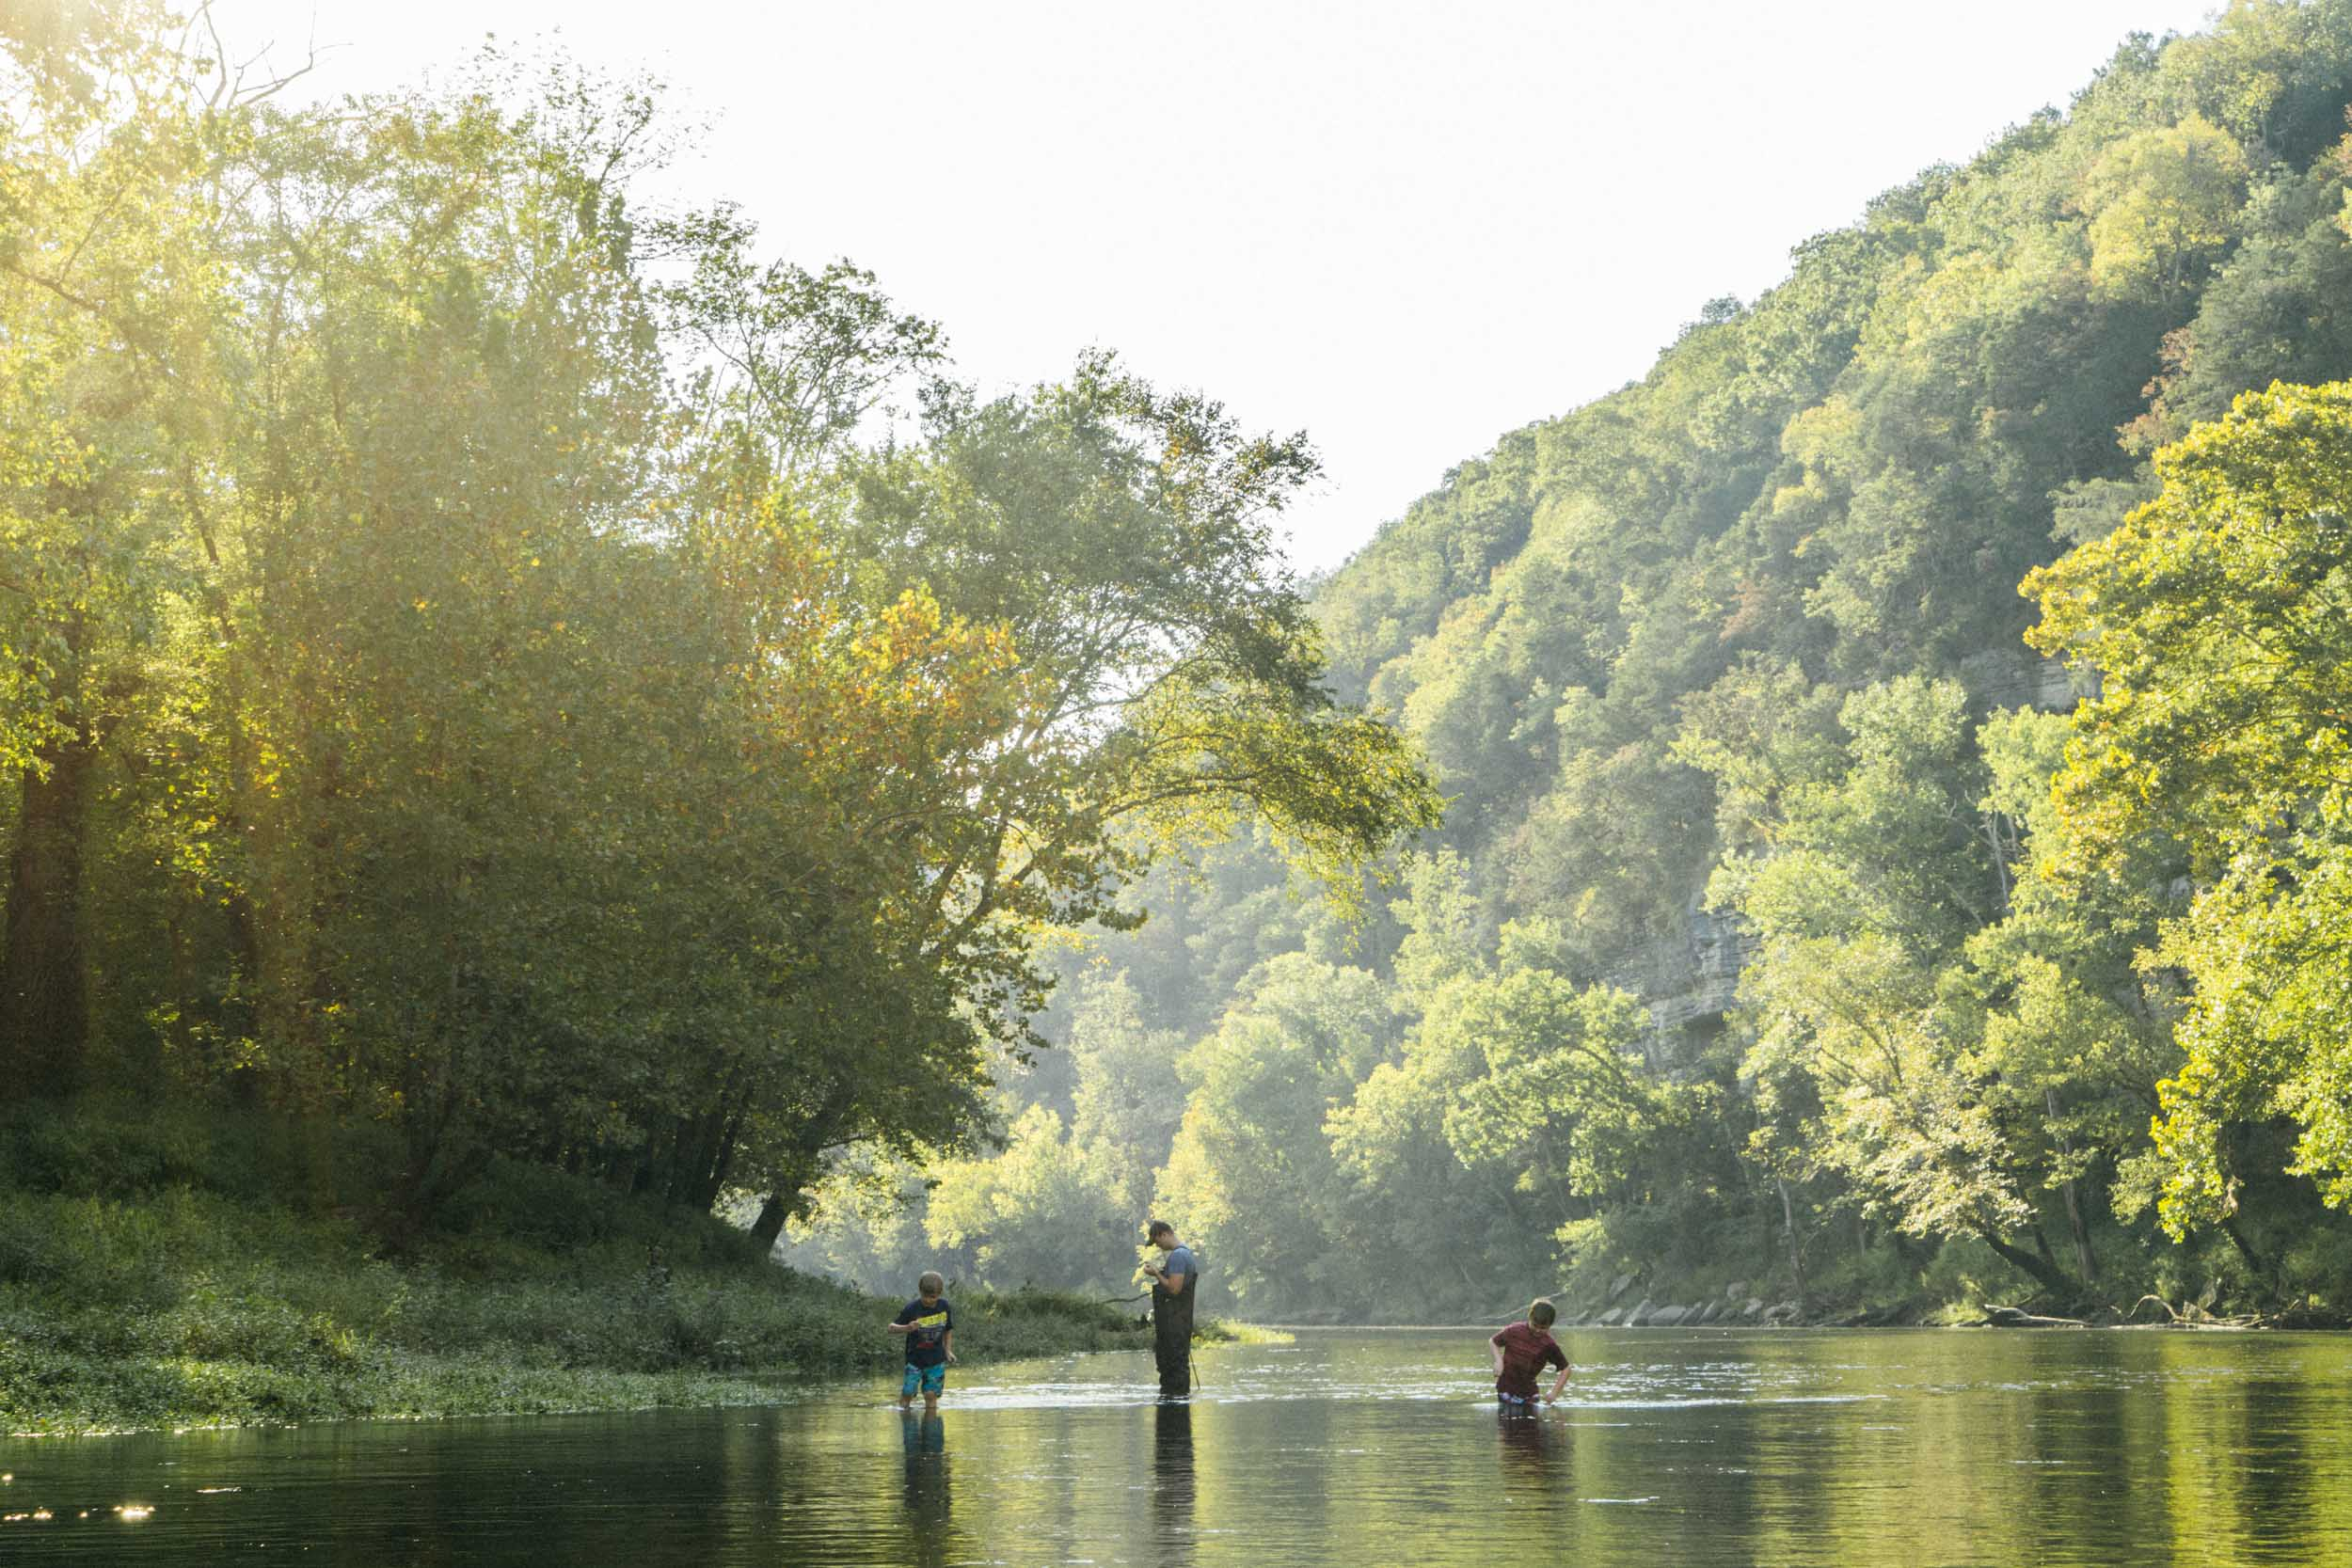 Cast a line this autumn in Tennessee